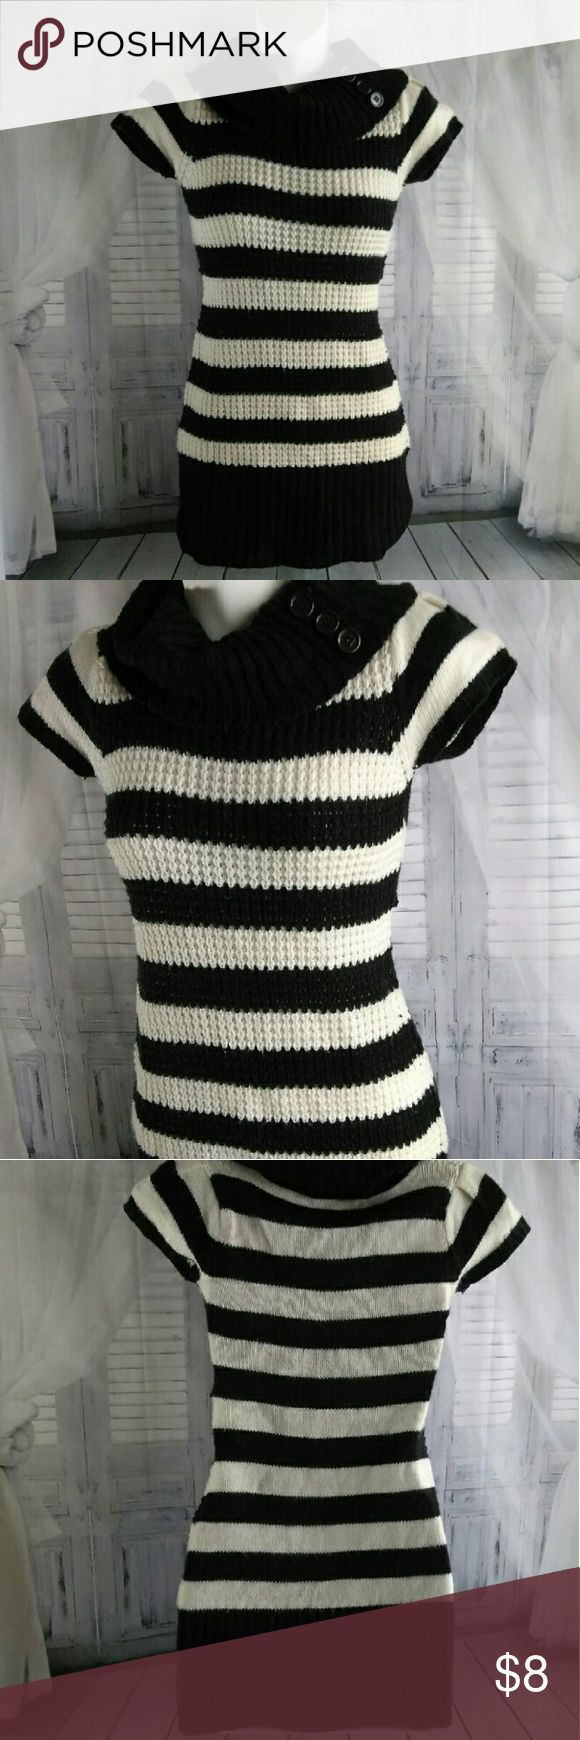 Knitted Cowl Neck Sweater Striped cowl neck Cherry Stix Dresses